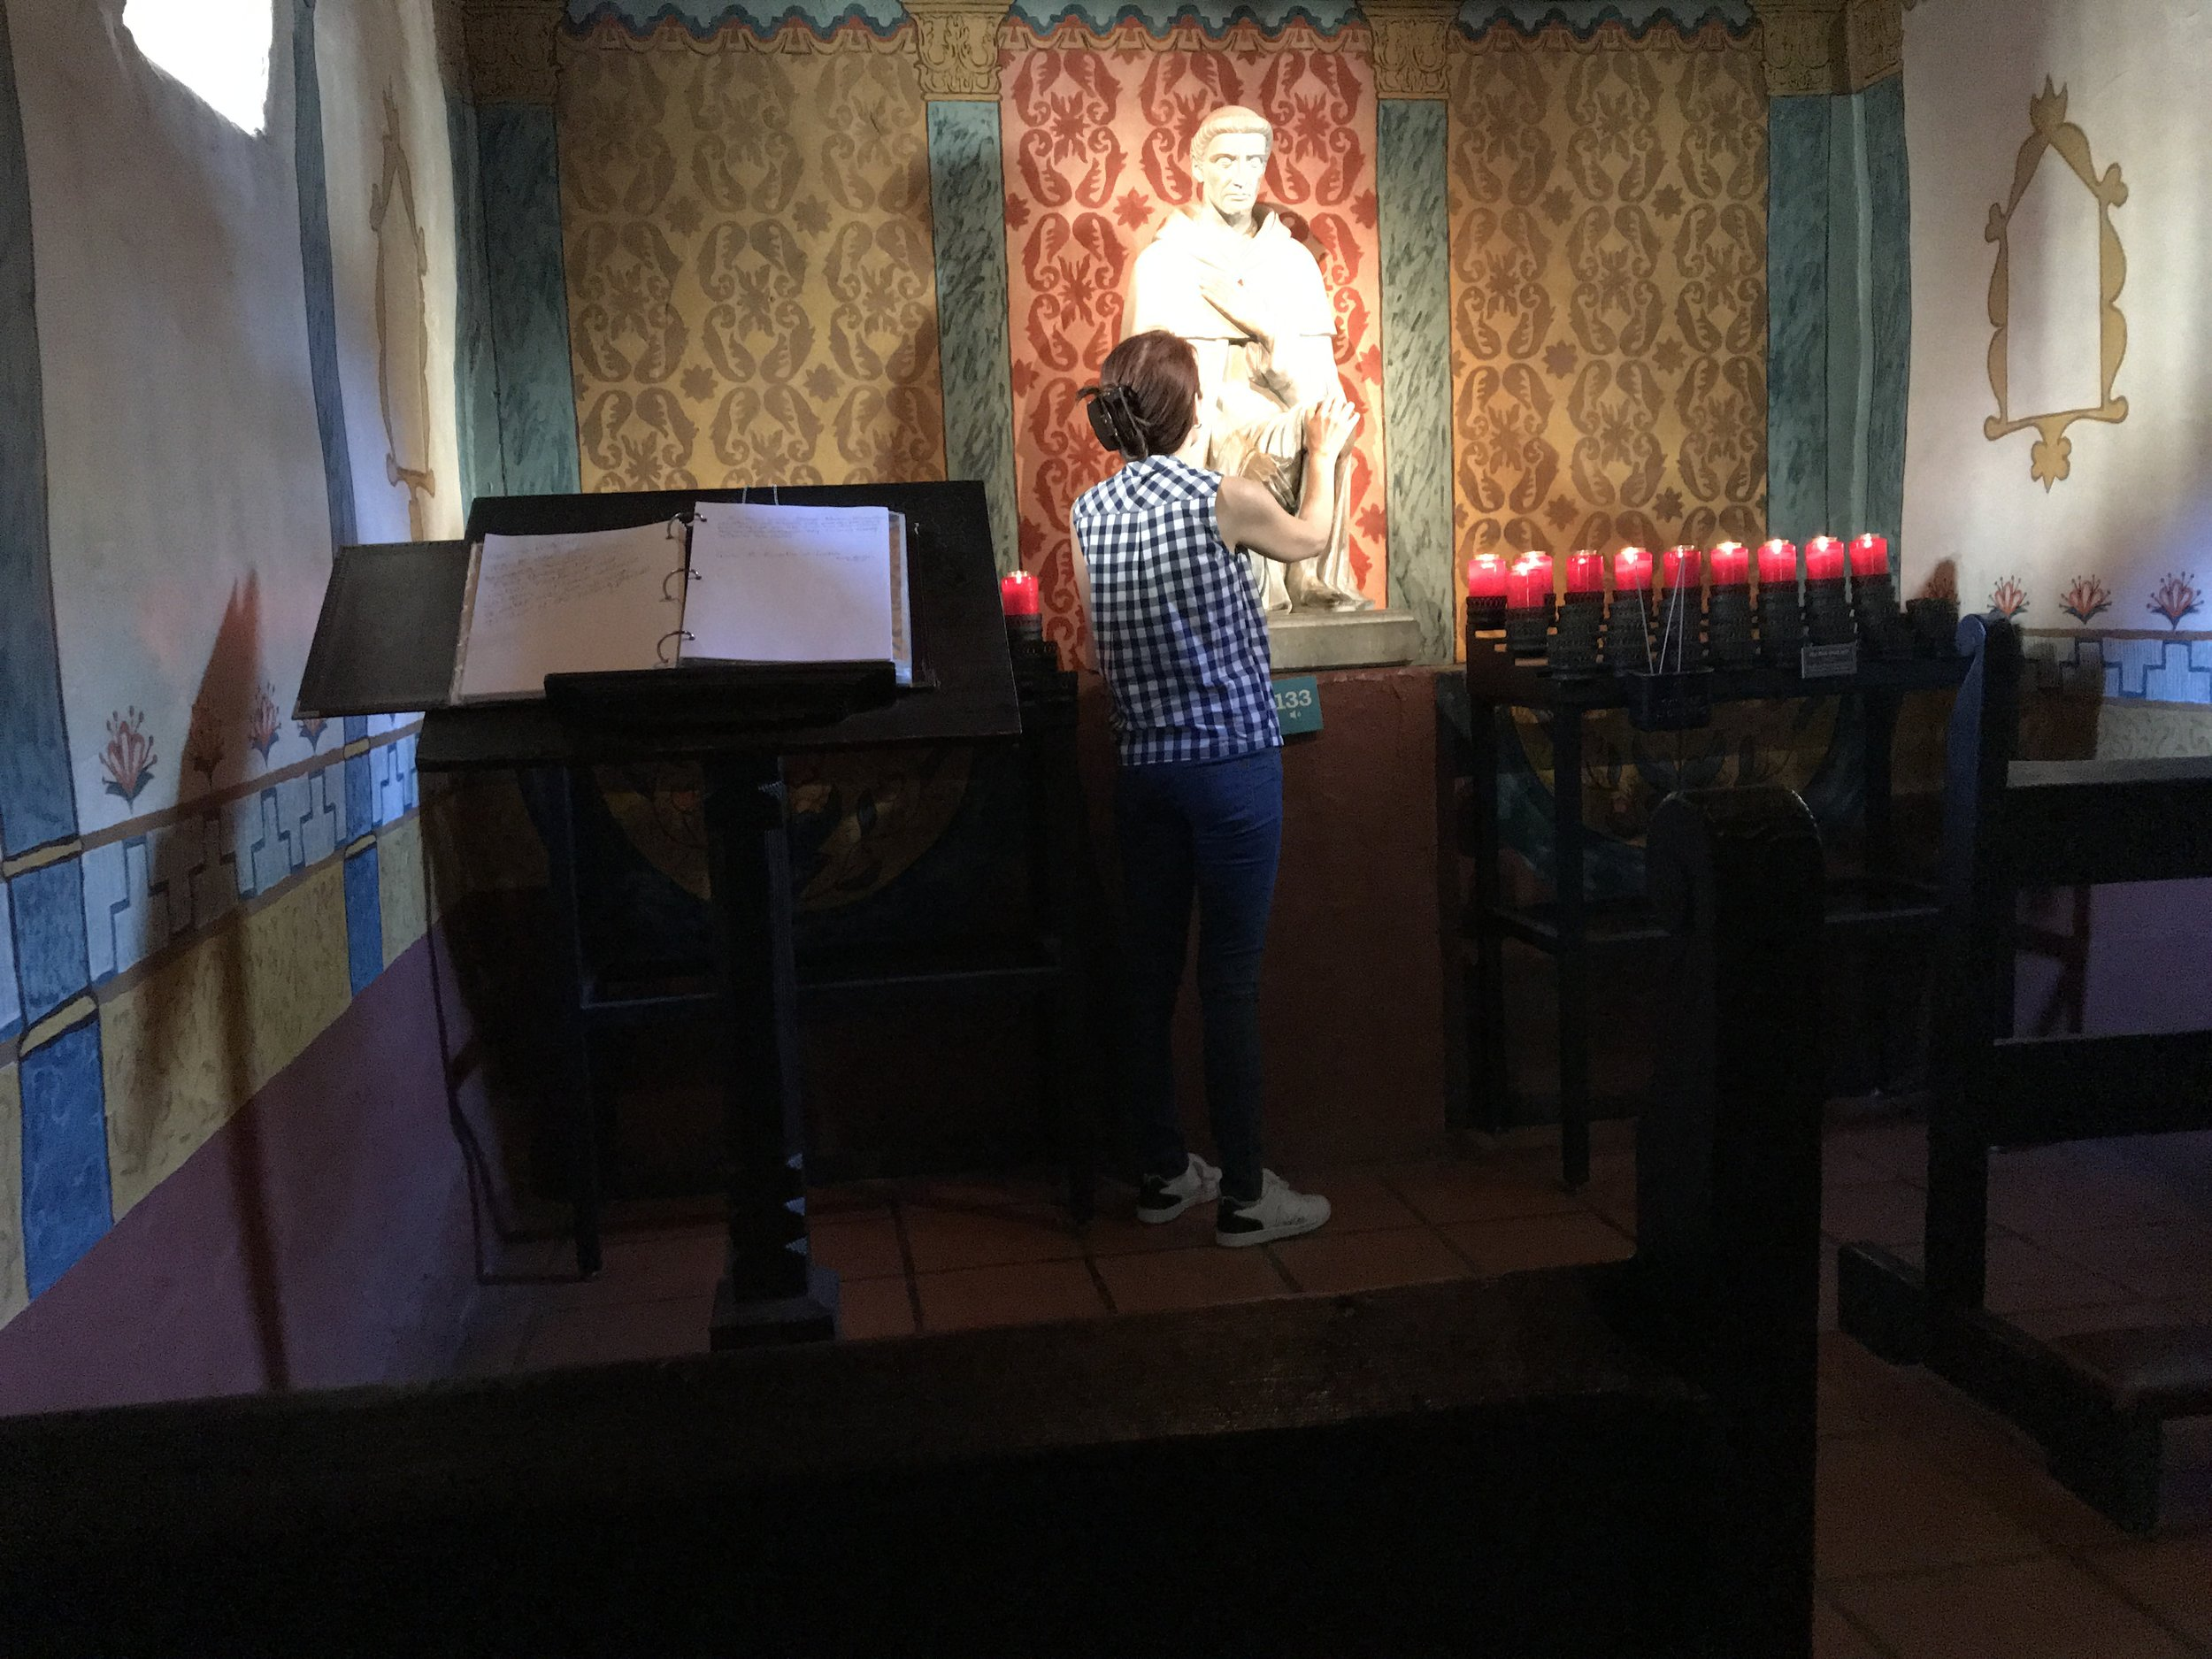 St. Peregrine Shrine  at Serra Chapel - Mission San Juan Capistrano -  May 3, 2018